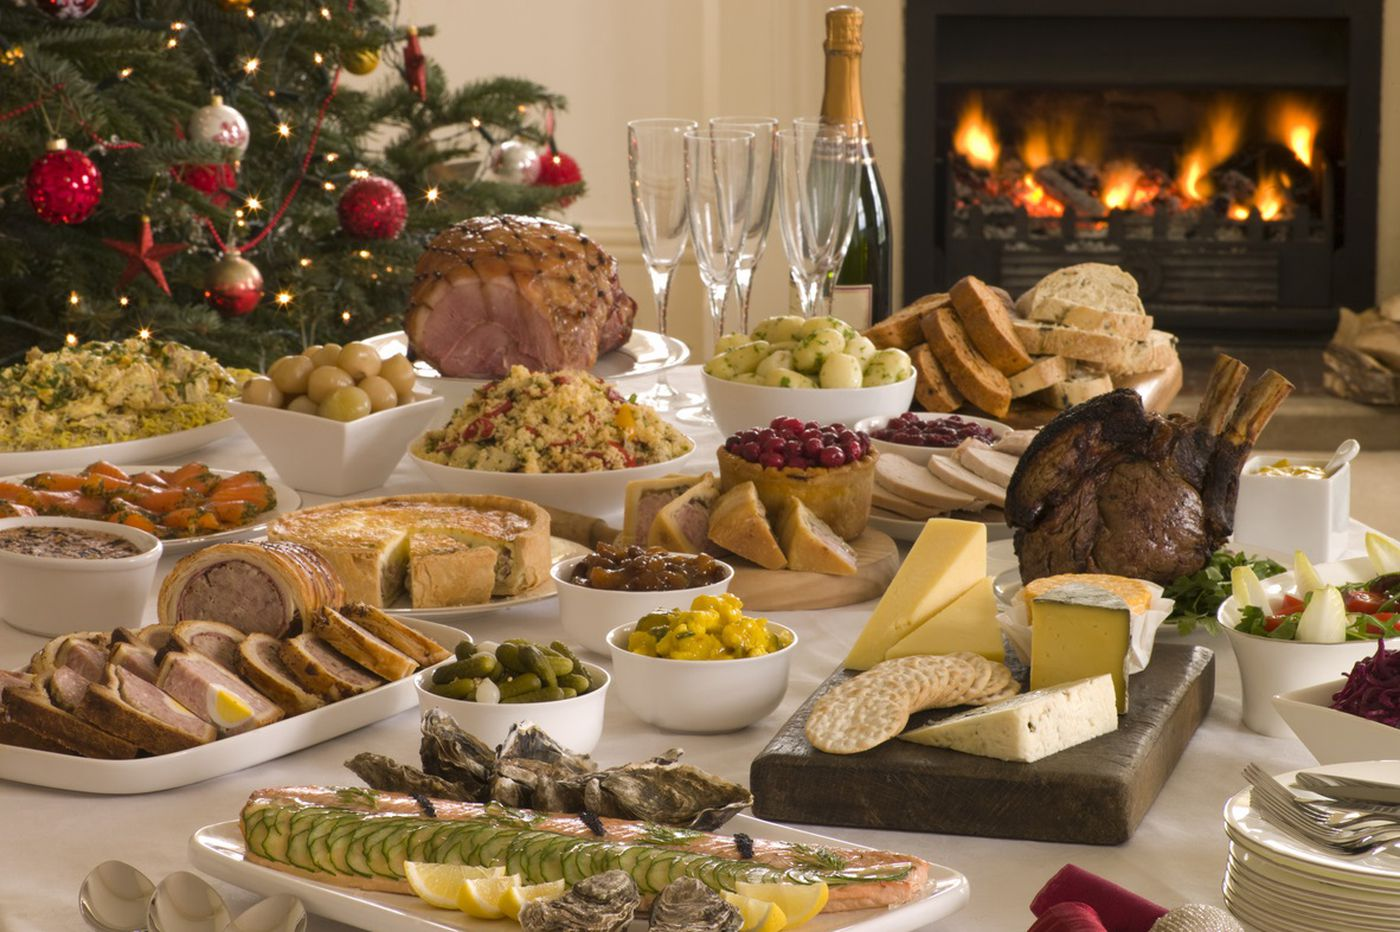 Staying safe from stress, foodborne illness and other holiday hazards